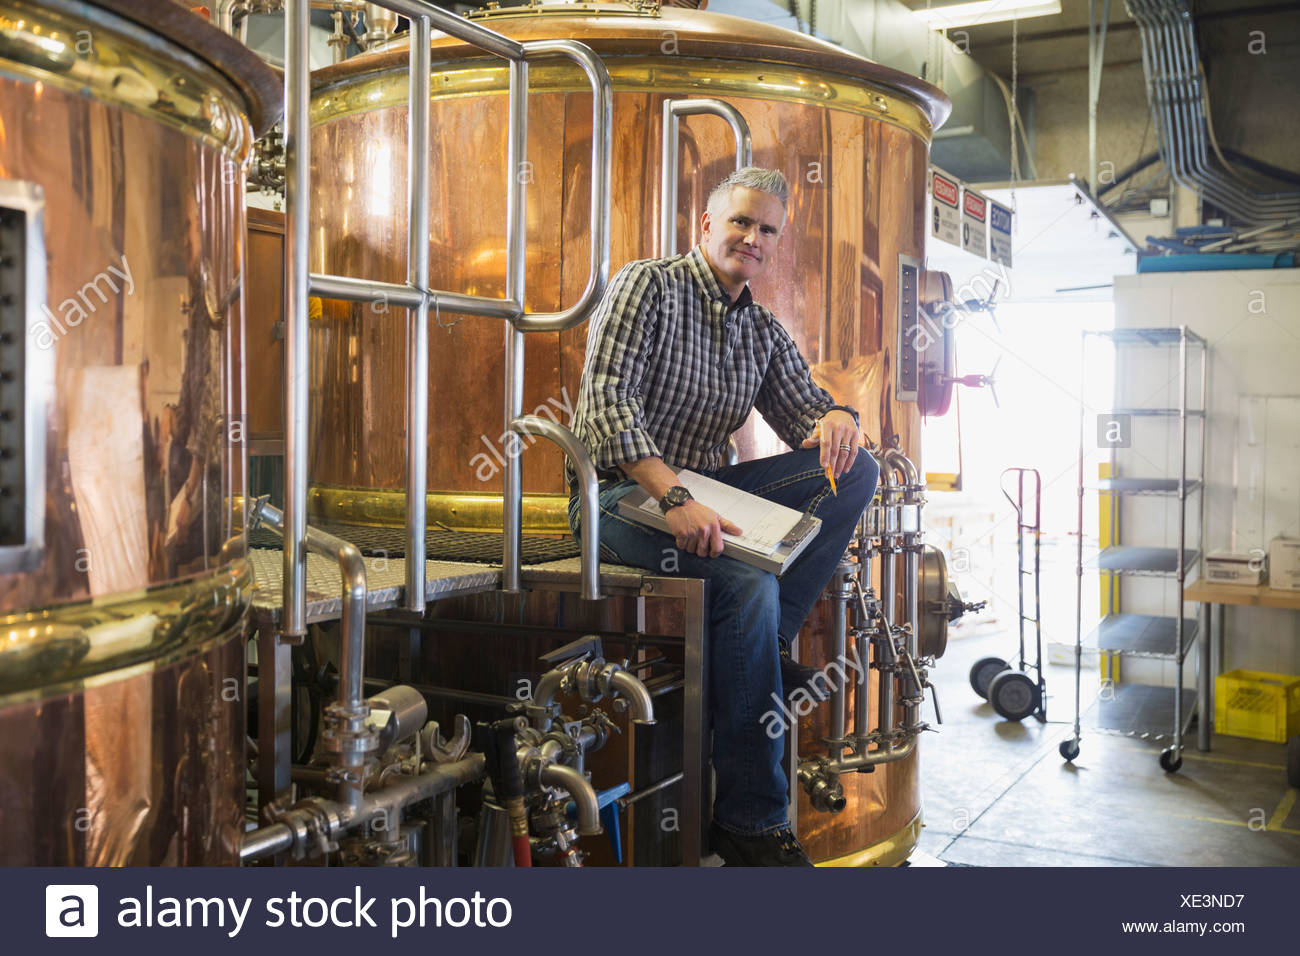 Portrait of brew master sitting at copper stills - Stock Image